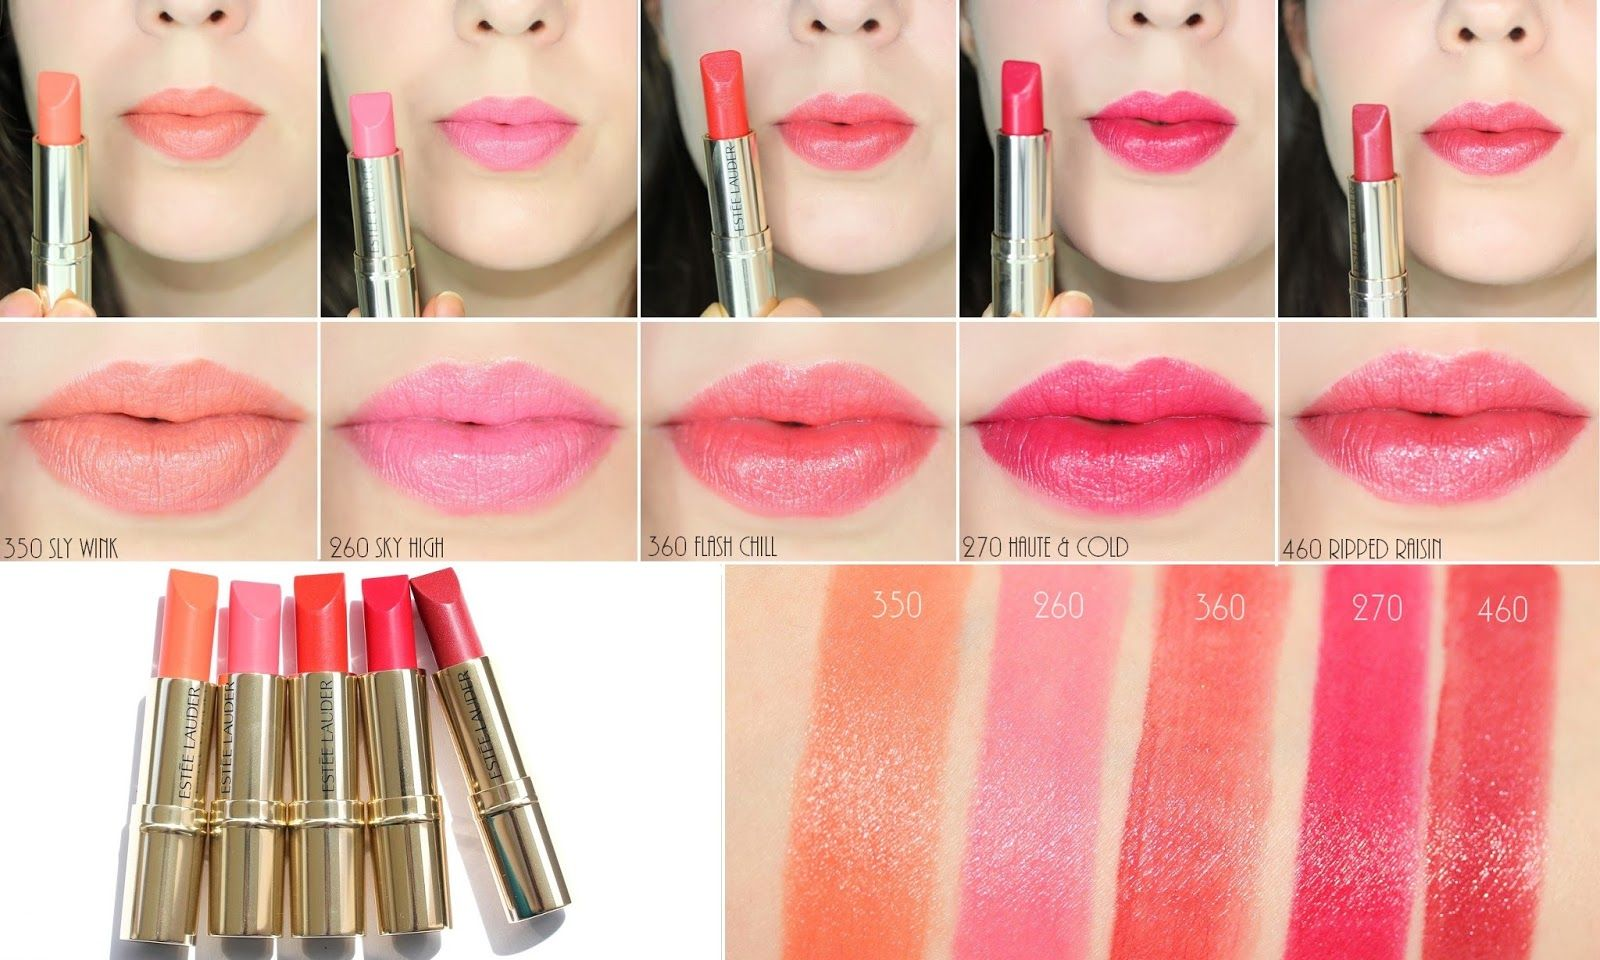 Estee Lauder Pure Color High Gloss SpringSummer 2012 Collection pictures